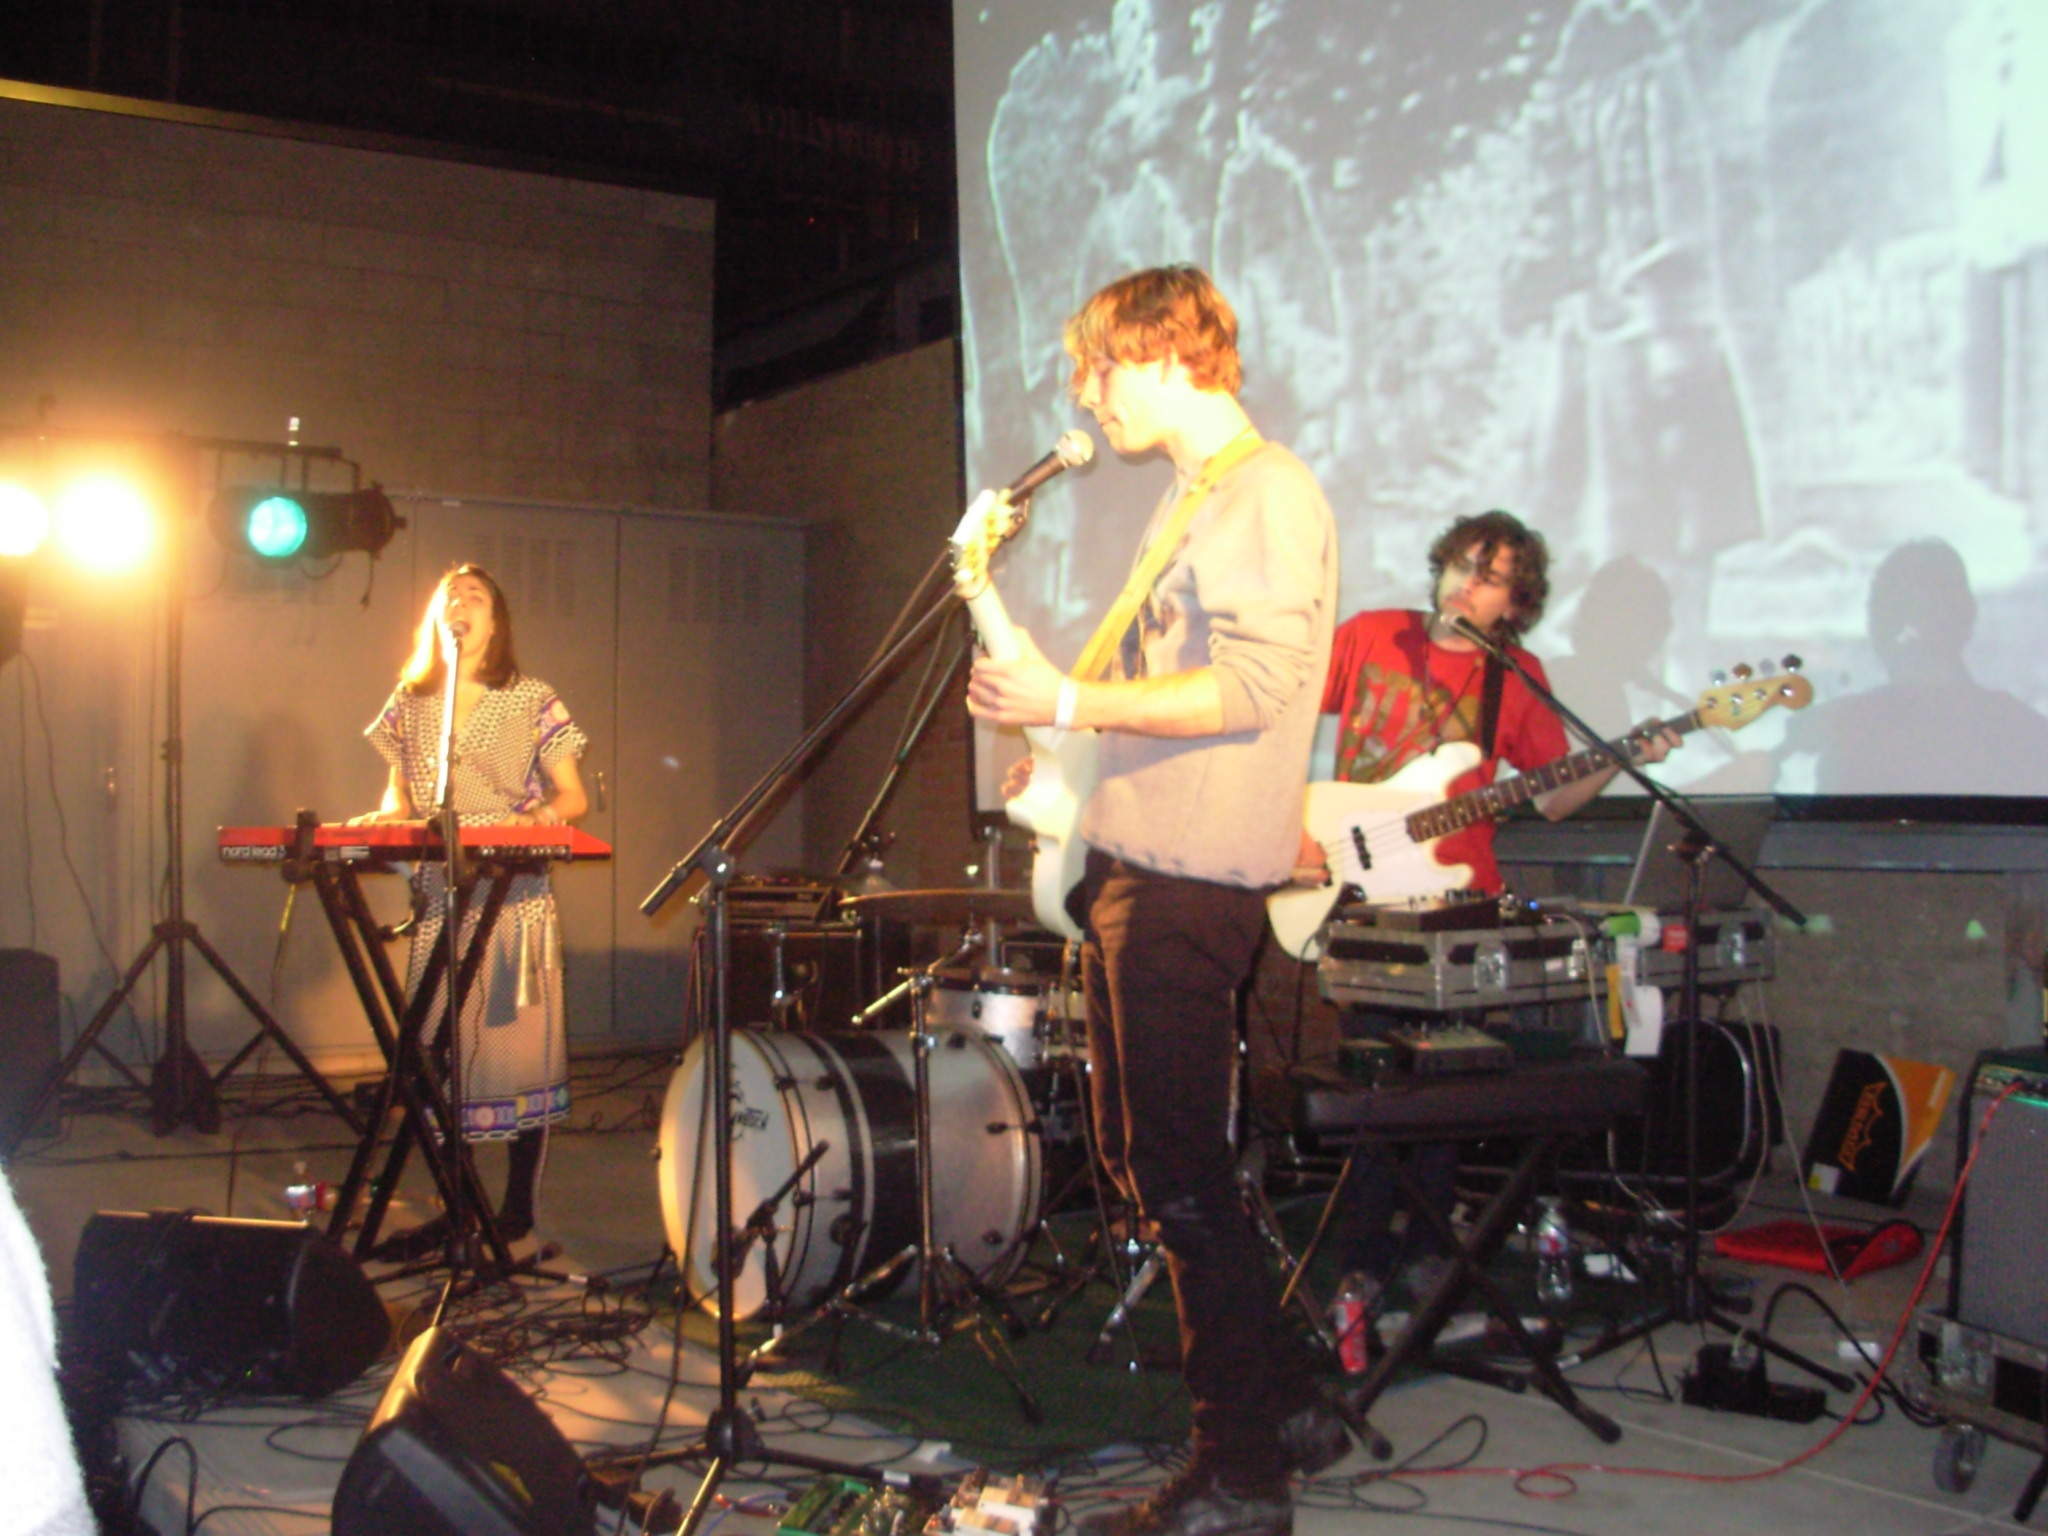 NY indie rockers Chairlift play at 15 Twenty